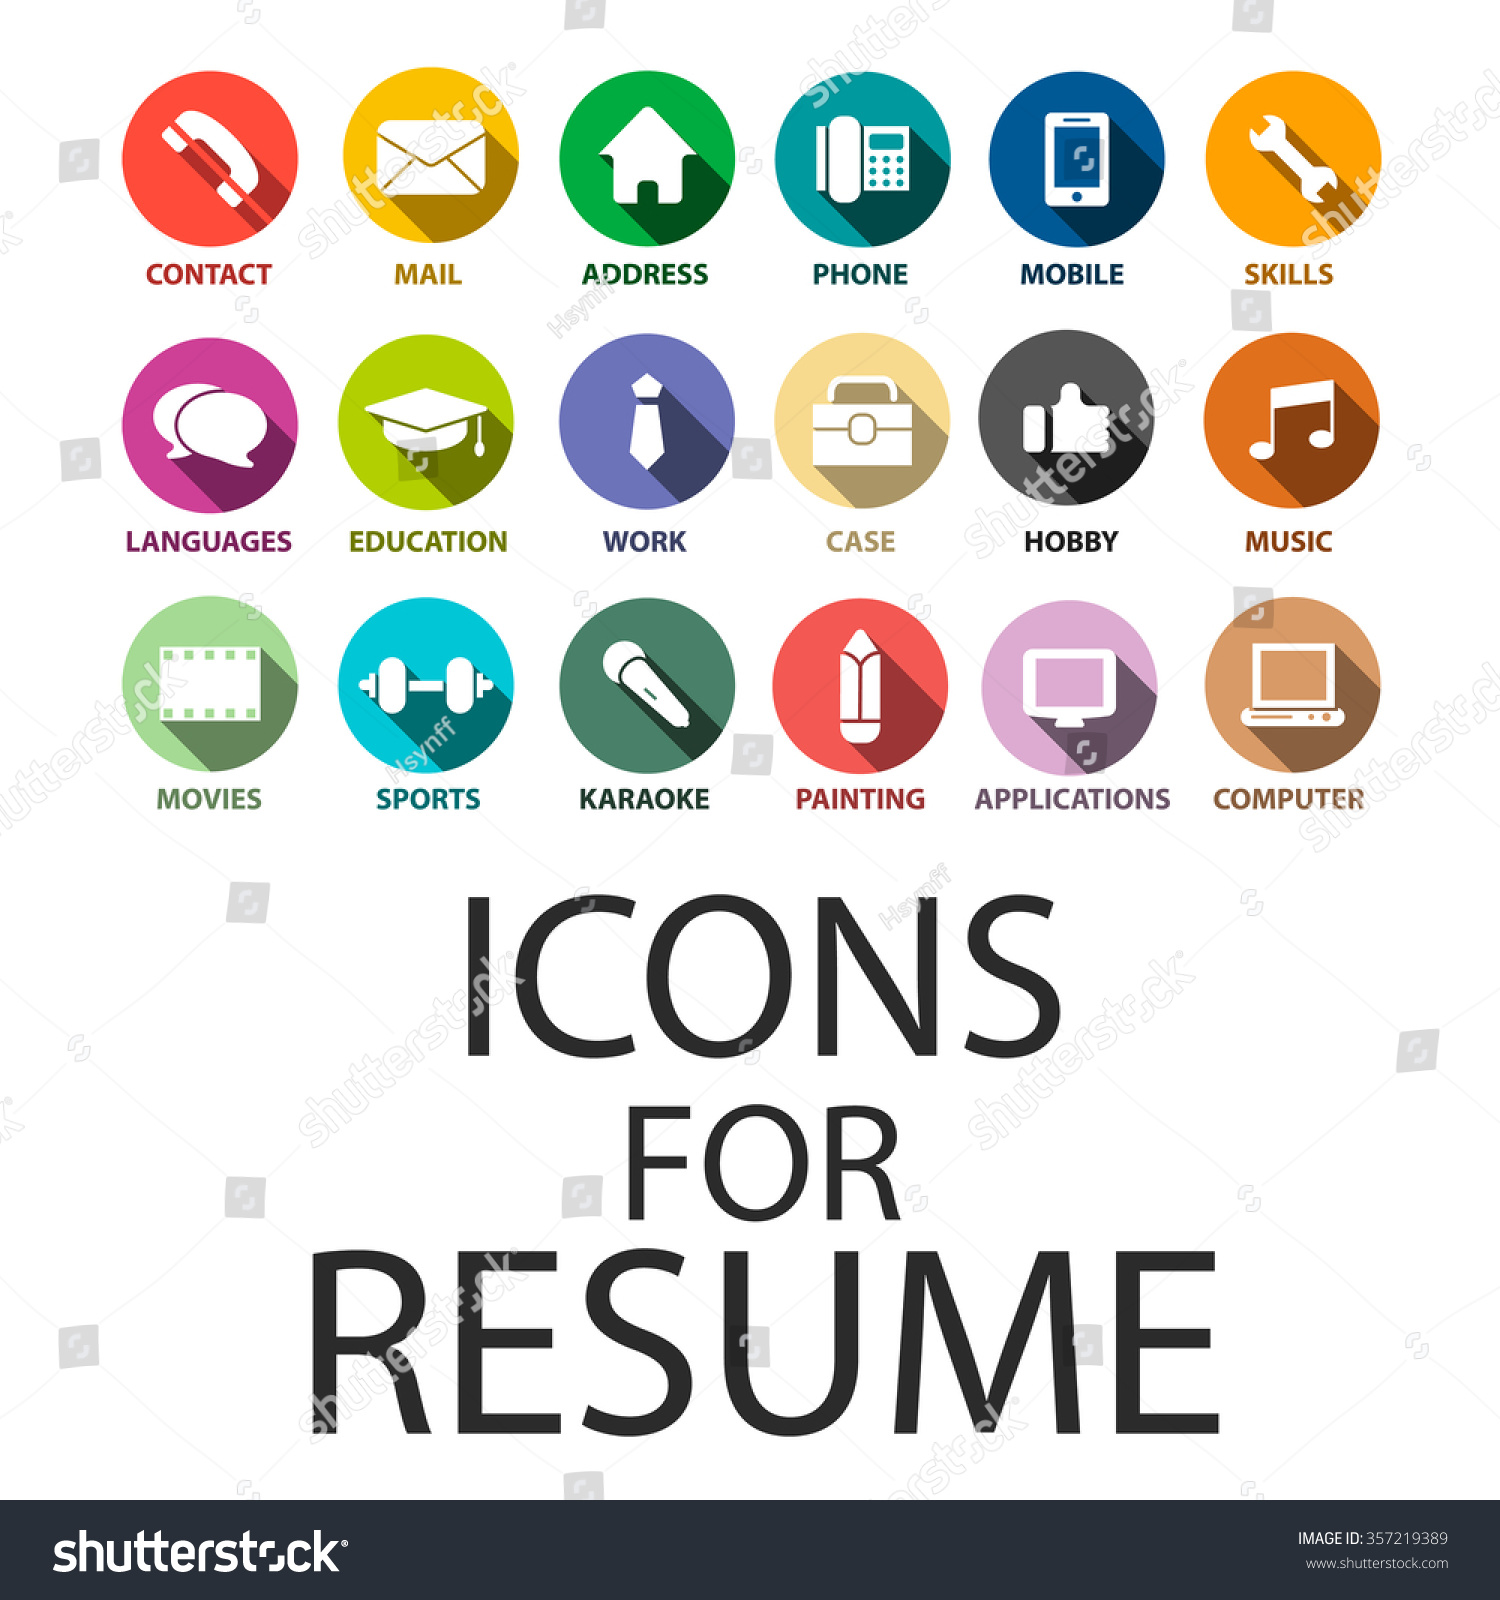 icons set your resume cv job stock vector 357219389 shutterstock icons set for your resume cv job